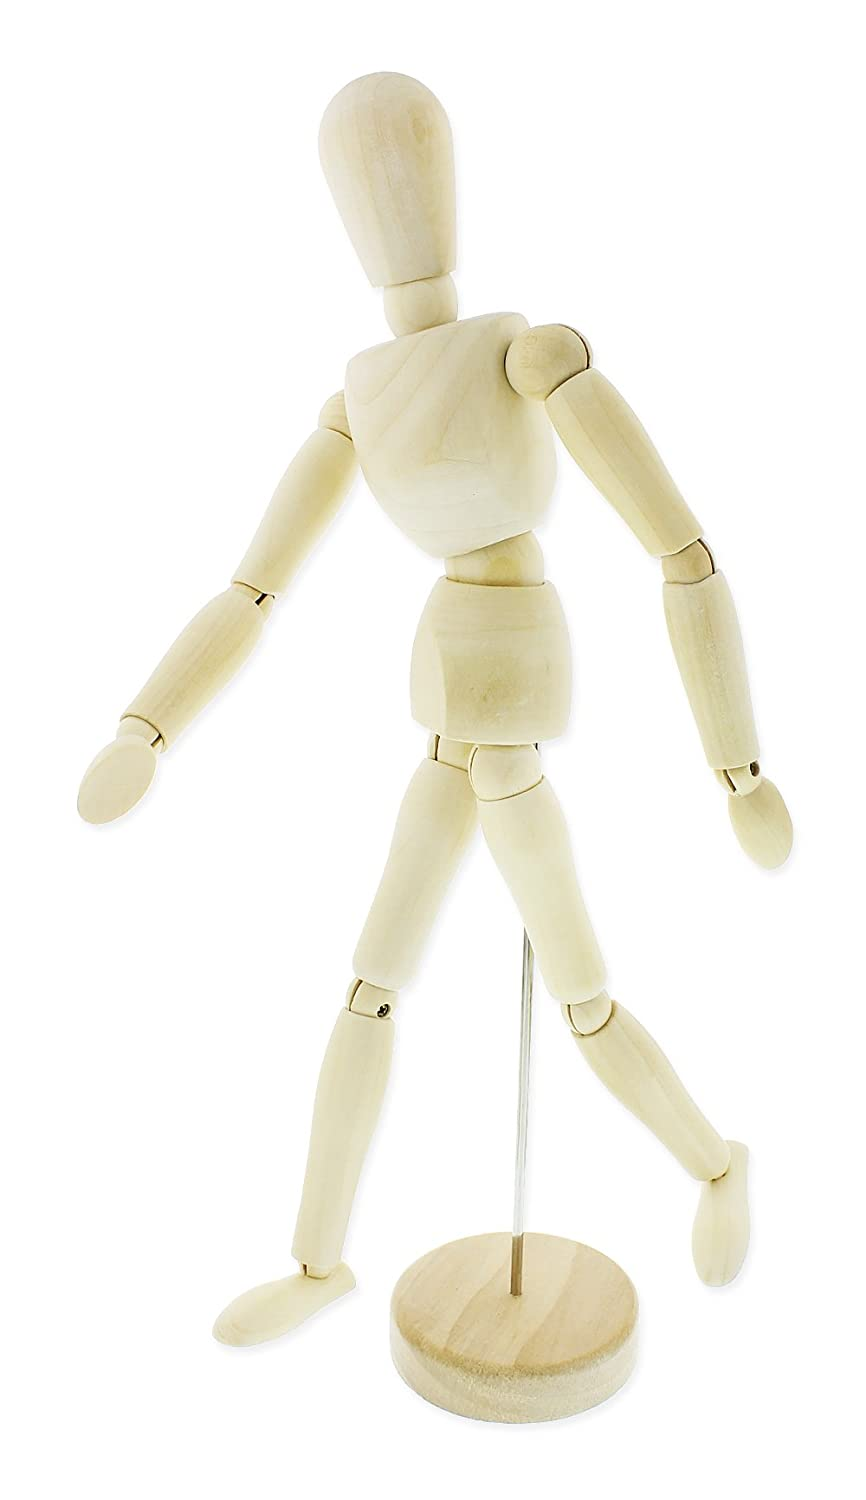 13 inches Wooden Manikin - Posable Drawing Sketching Model with Stand Juvale 4336946116